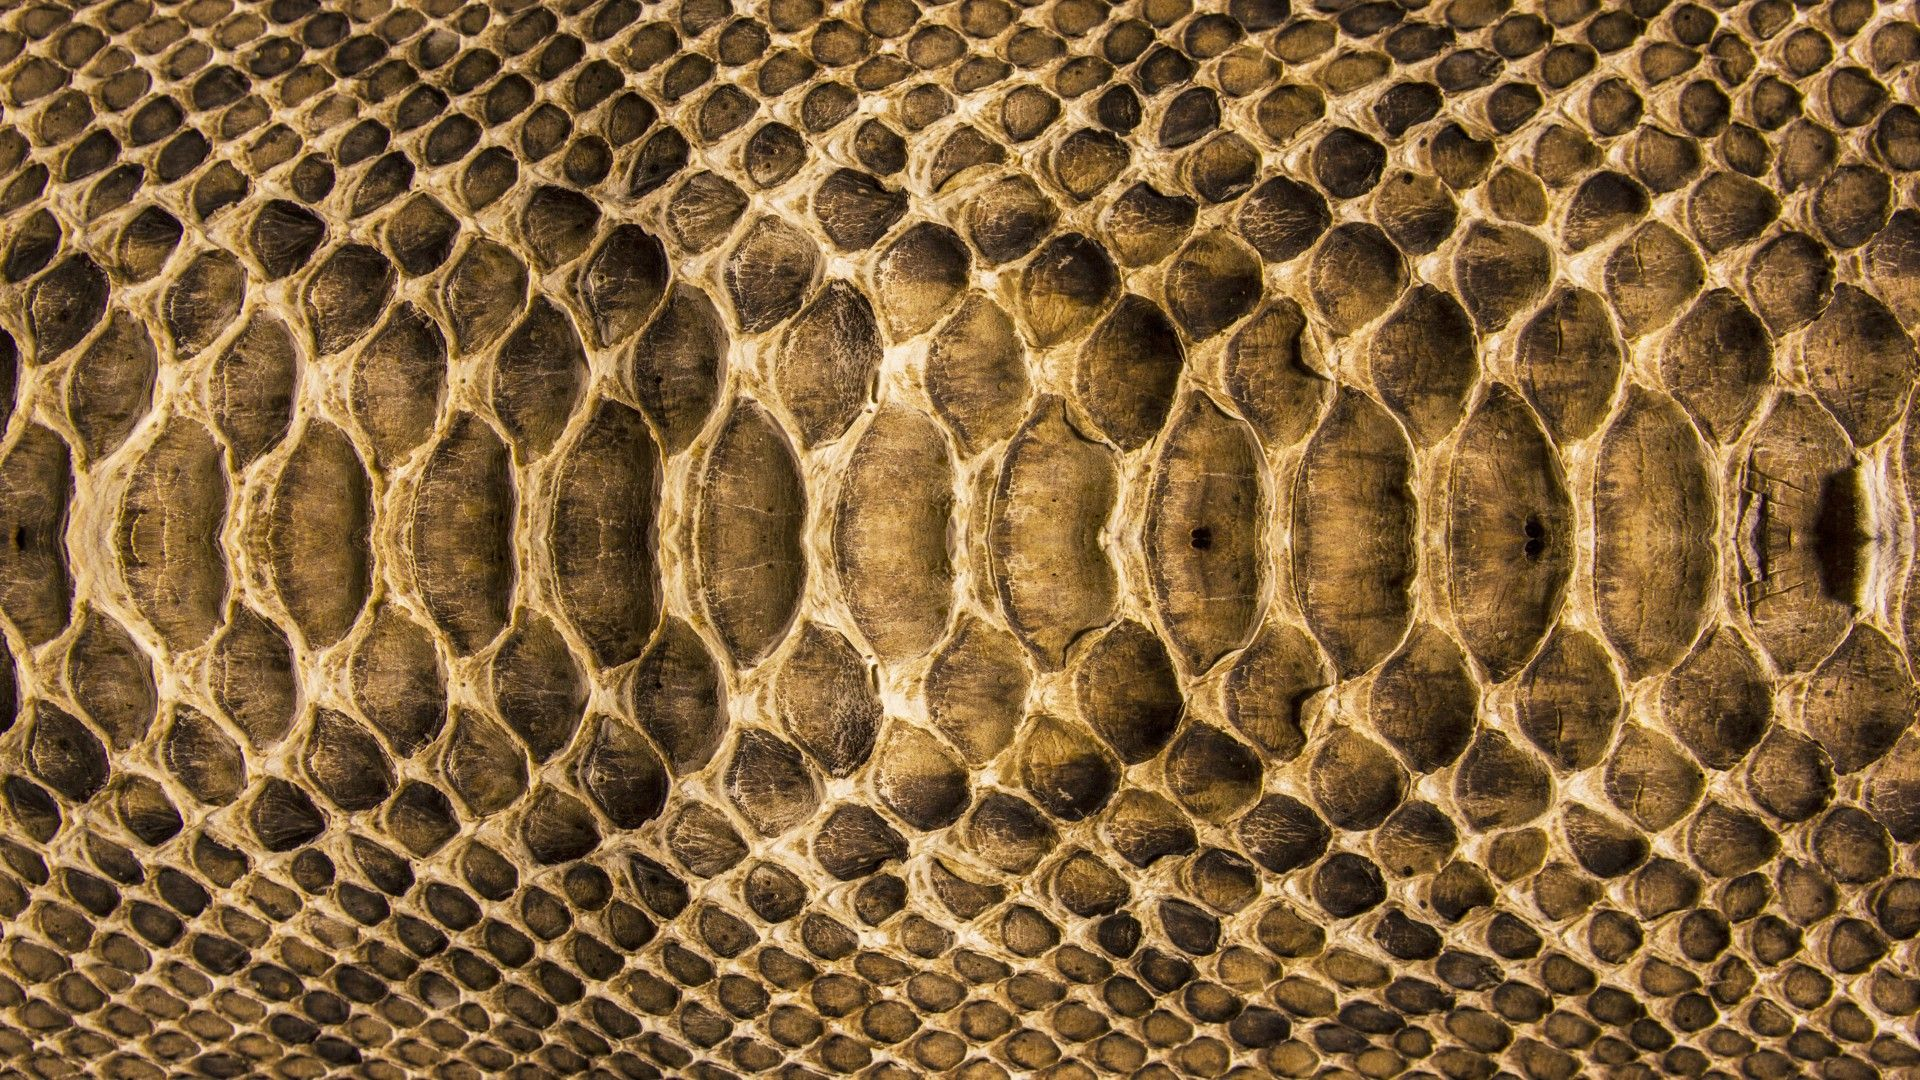 snake skin wallpapers : find best latest snake skin wallpapers in